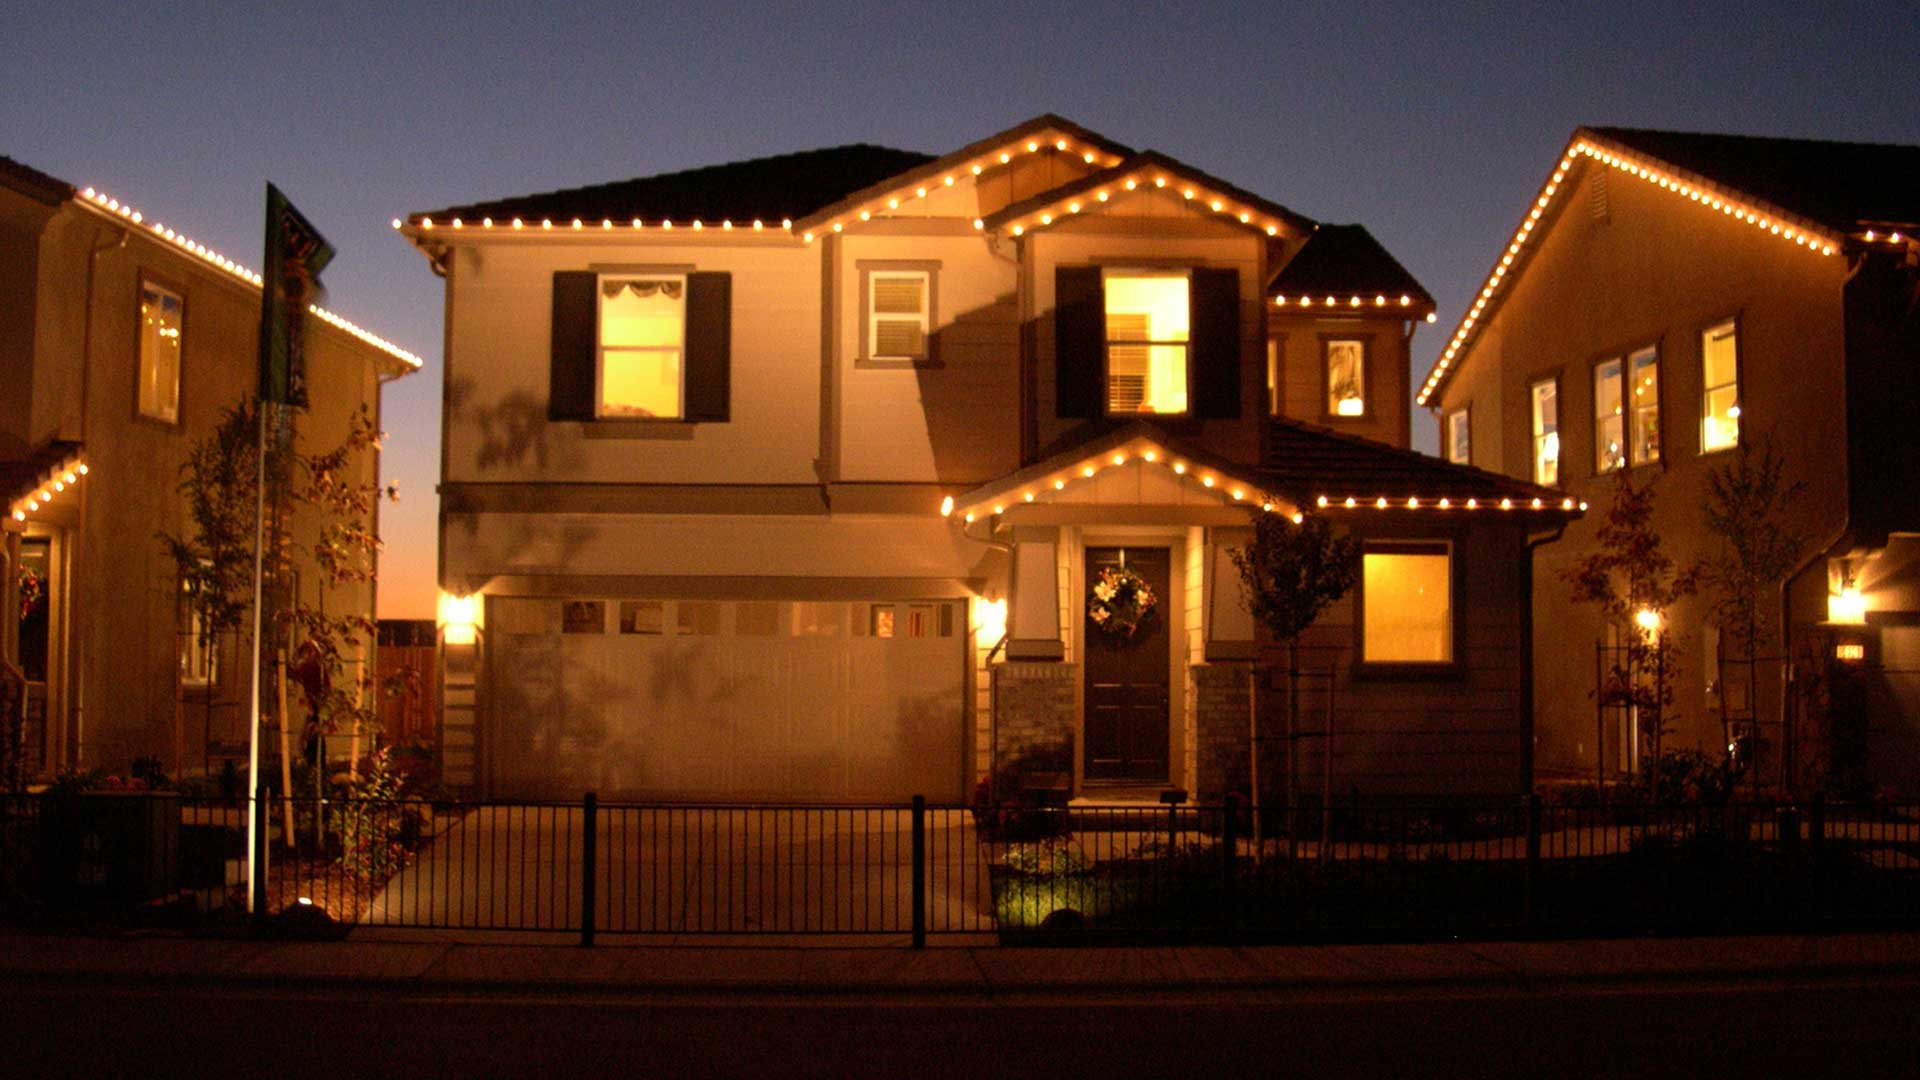 our christmas light installation companies success depends on your satisfaction